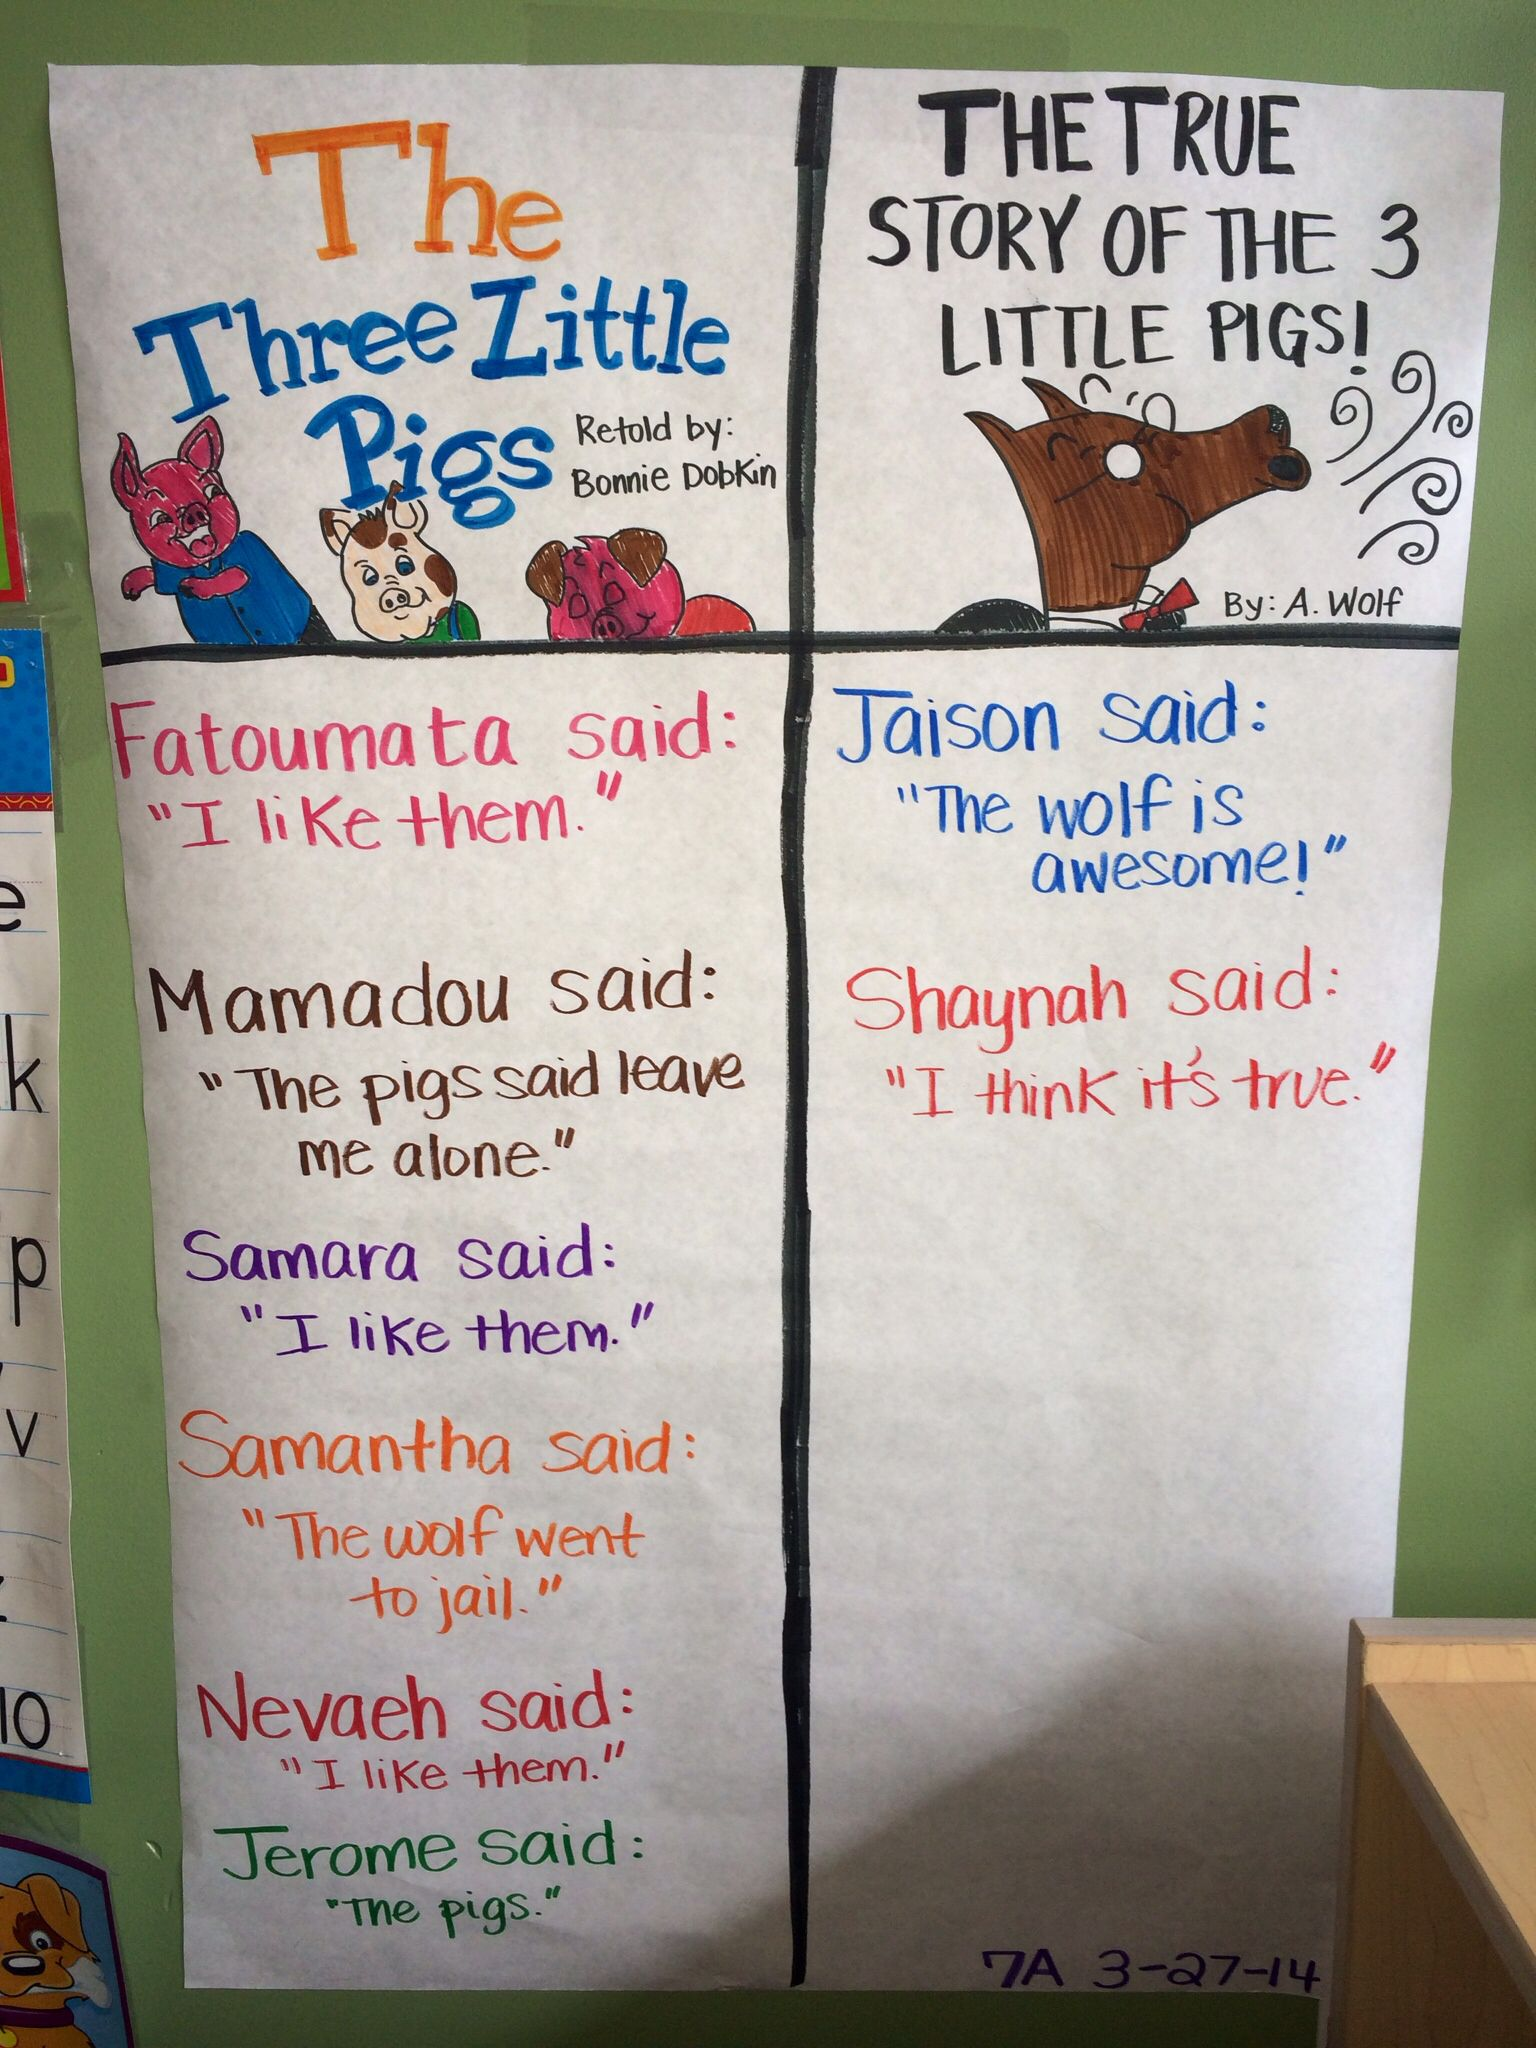 hight resolution of compare and contrast the three little pigs and the true story of the three little pigs and see what story your kids believe fun